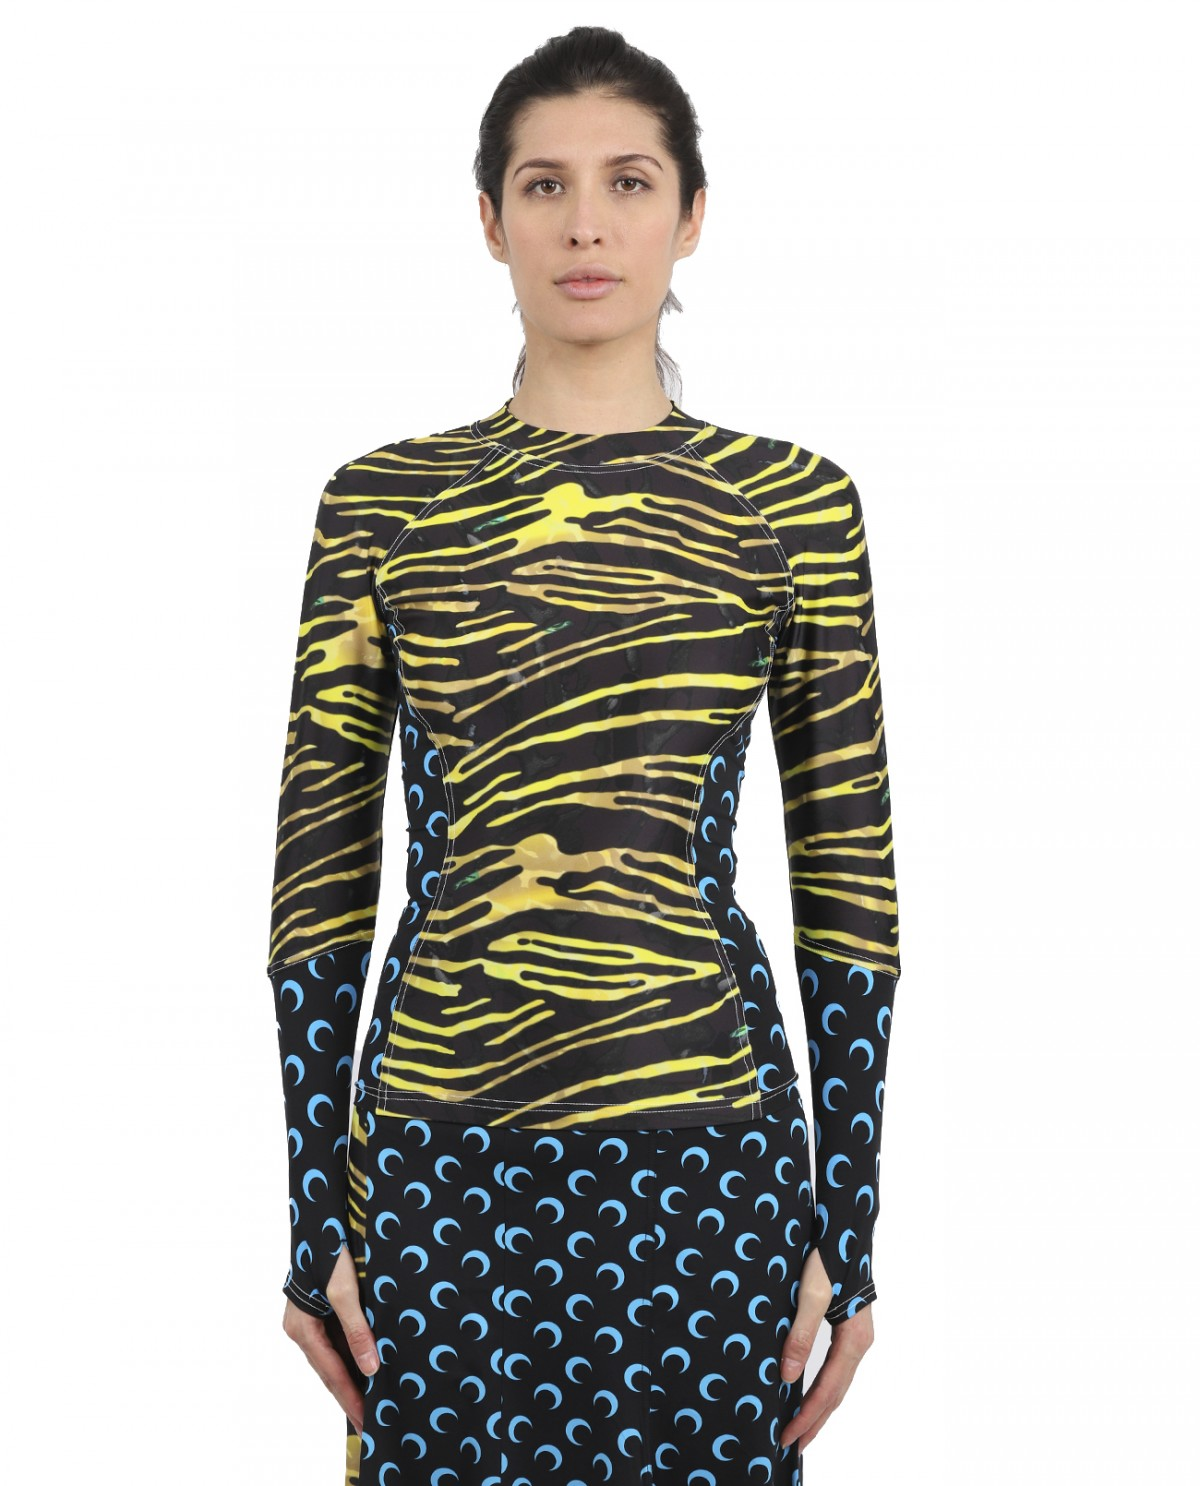 Marine Serre zebra multi cut top